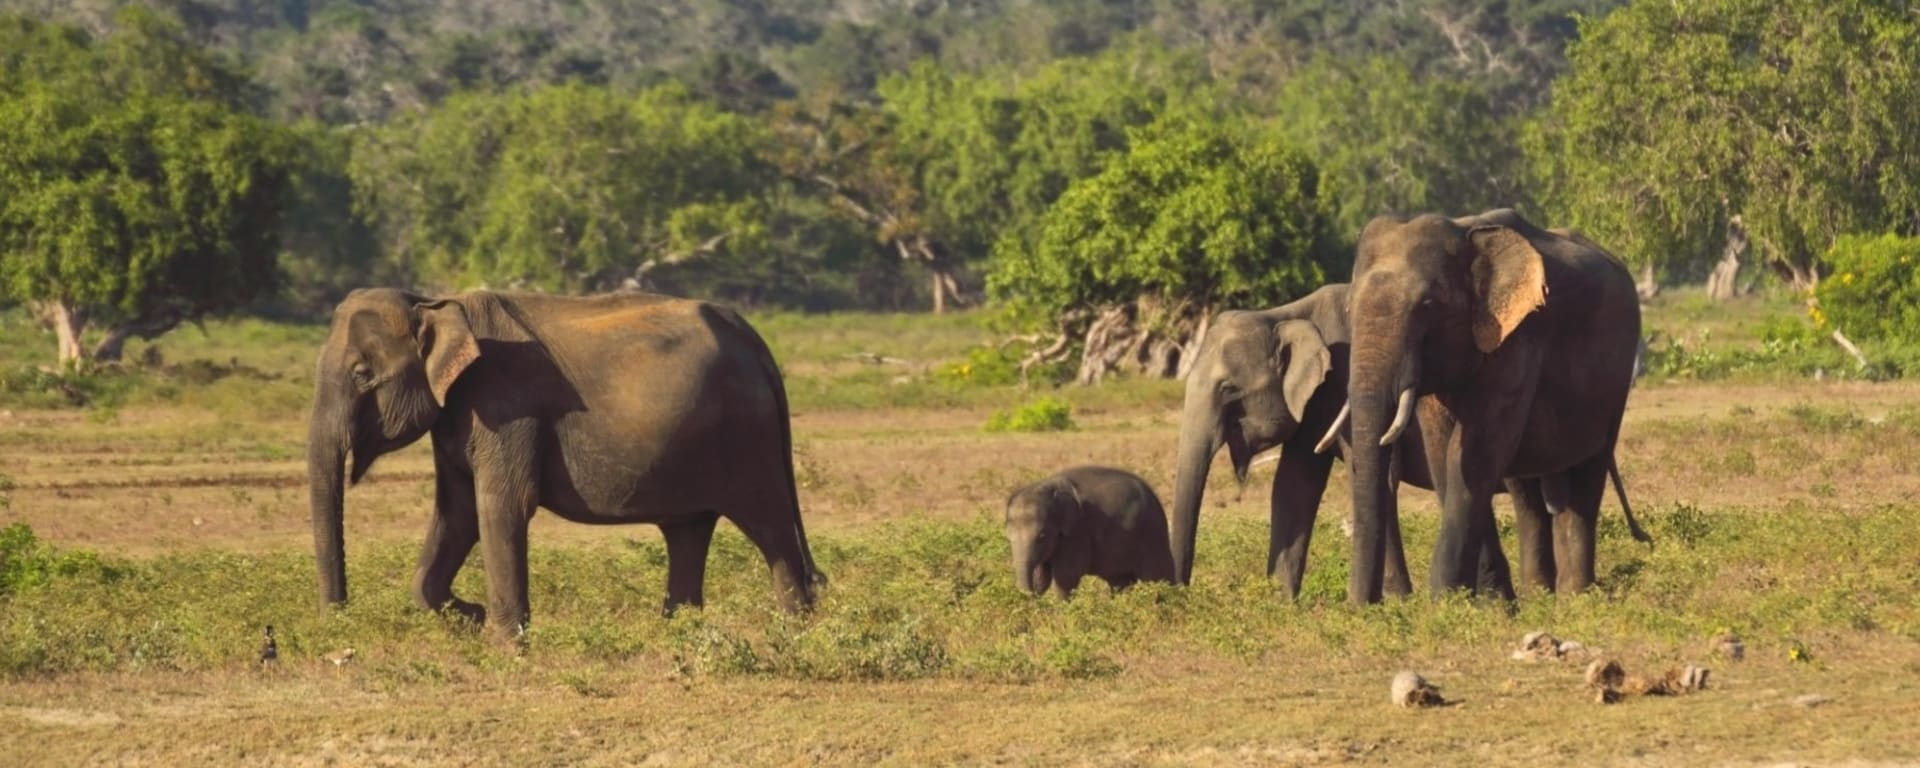 Active Discovery - Sri Lanka mit Claudia ab Colombo: Yala National Park: Elephants